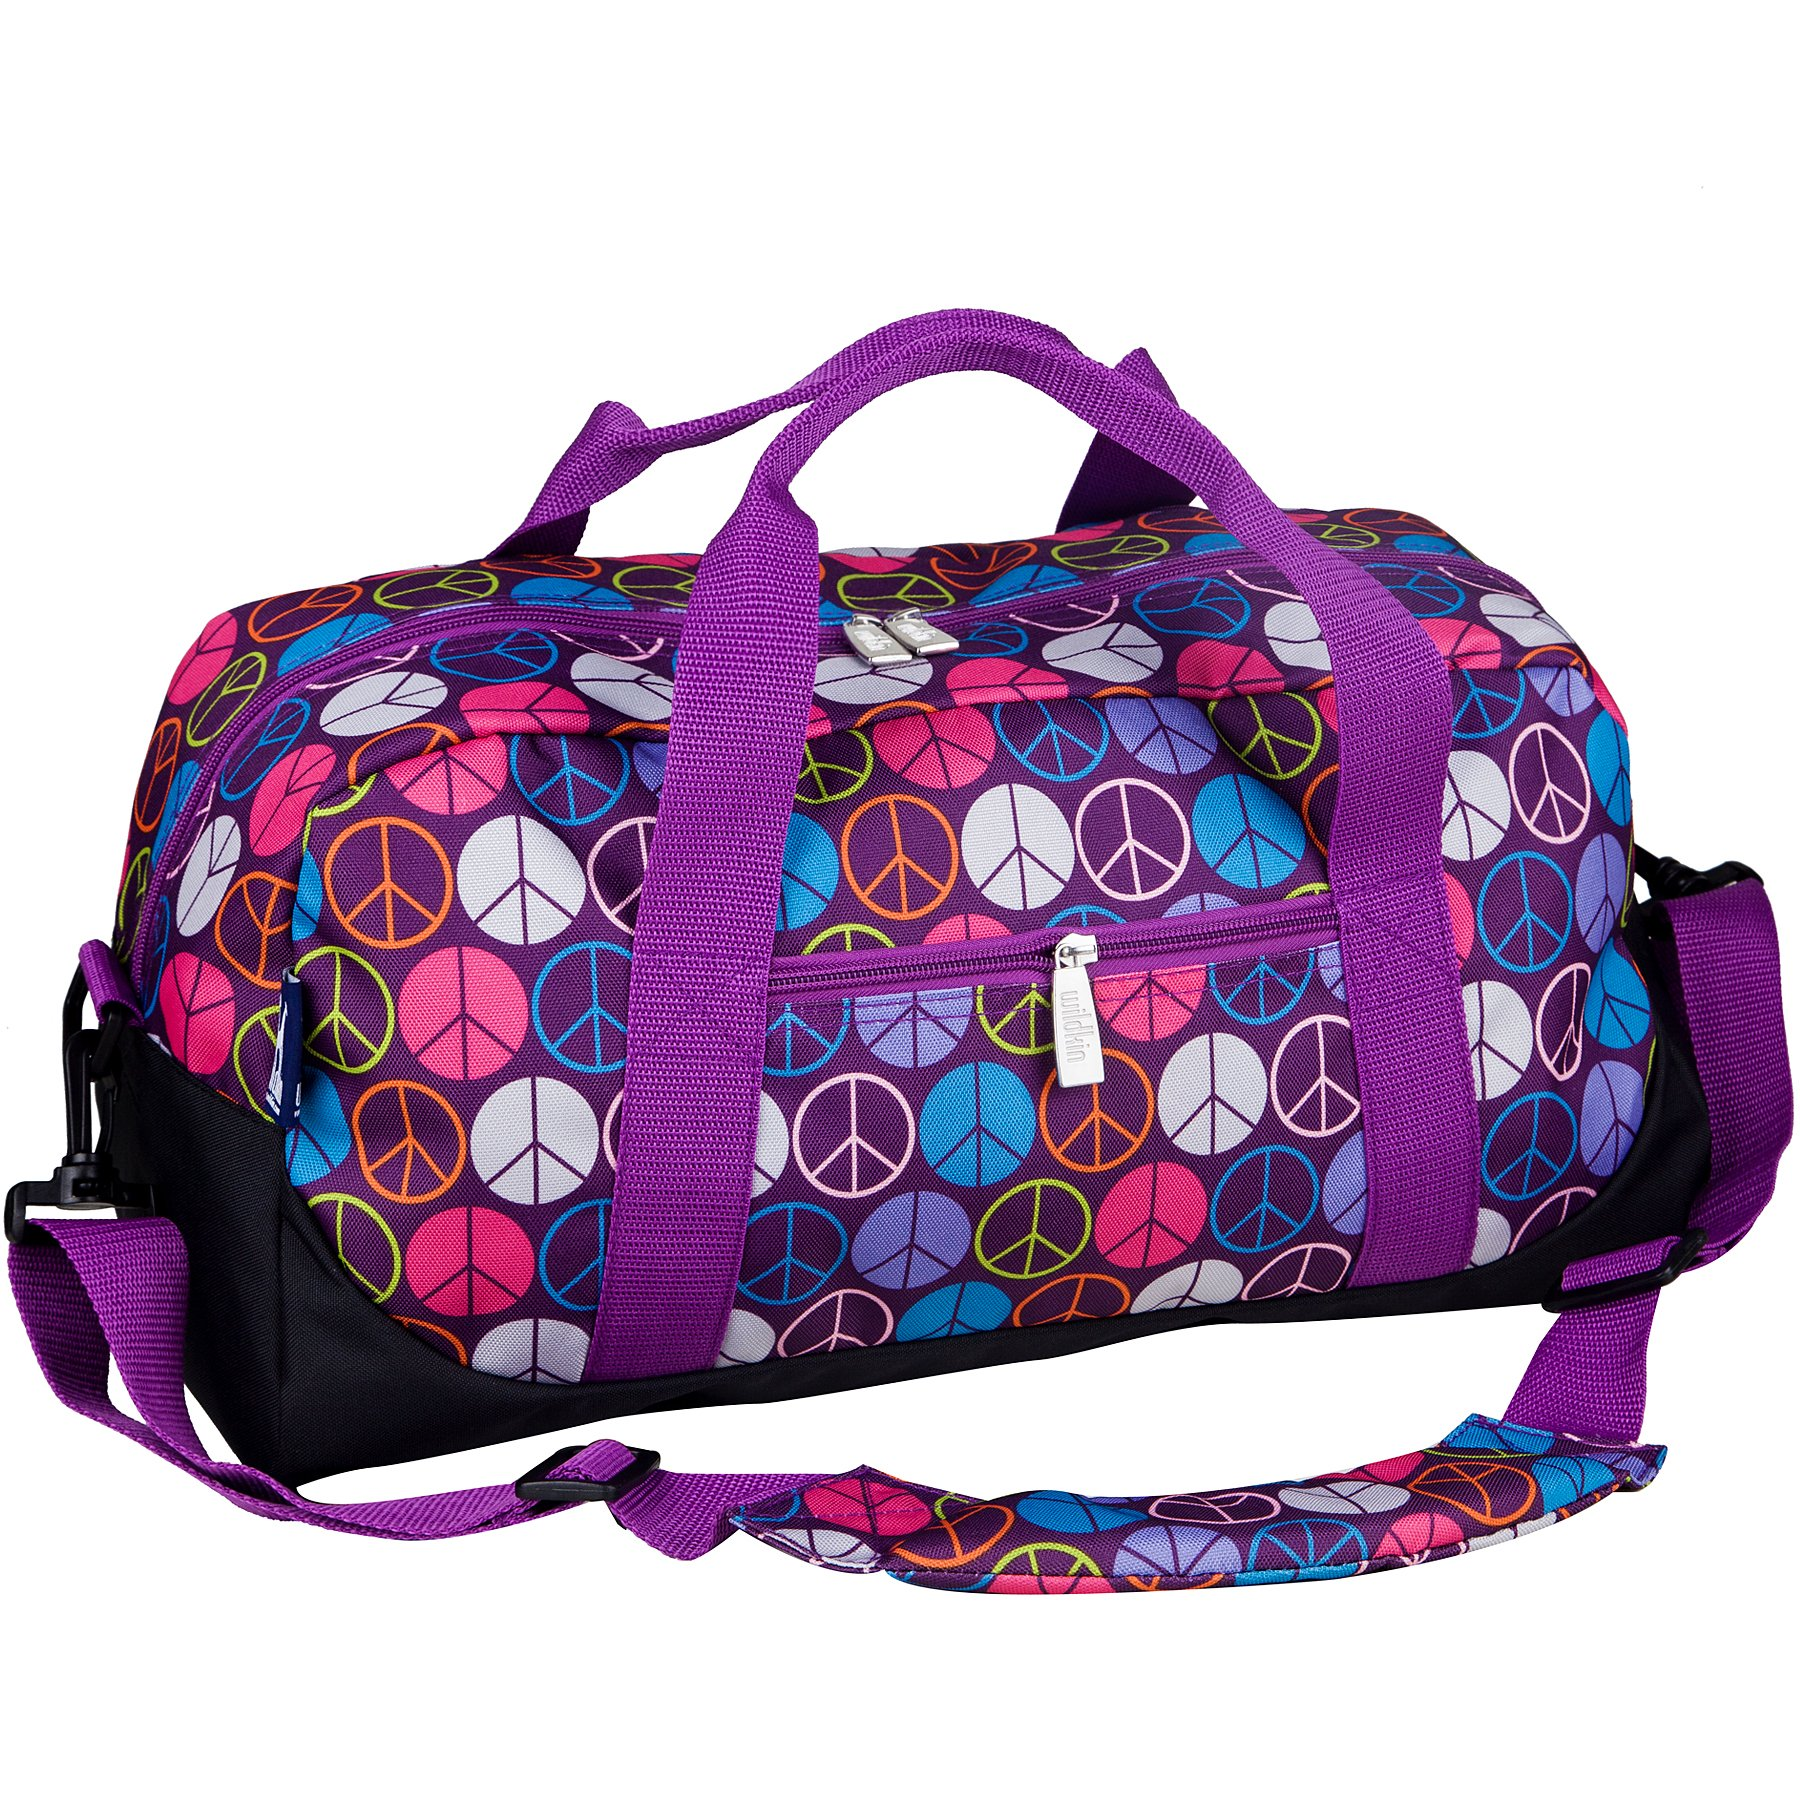 Wildkin Overnighter Duffel Bag, Features Moisture-Resistant Lining and Padded Shoulder Strap, Perfect for Sleepovers, Sports Practice, and Travel – Peace Signs